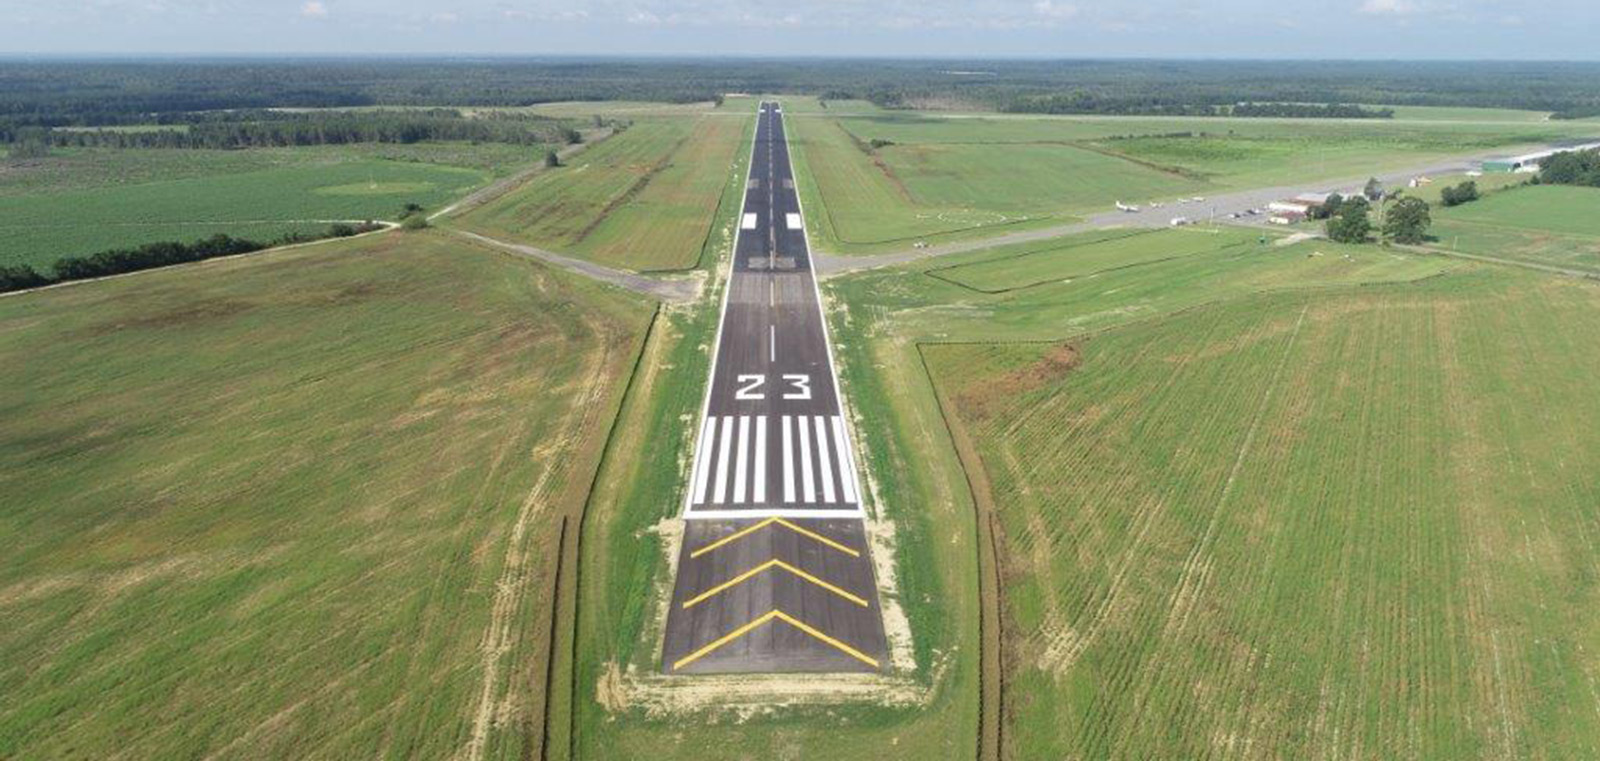 RUNWAY 23 EXTENSION PLANTATION AIRPARK (JYL)